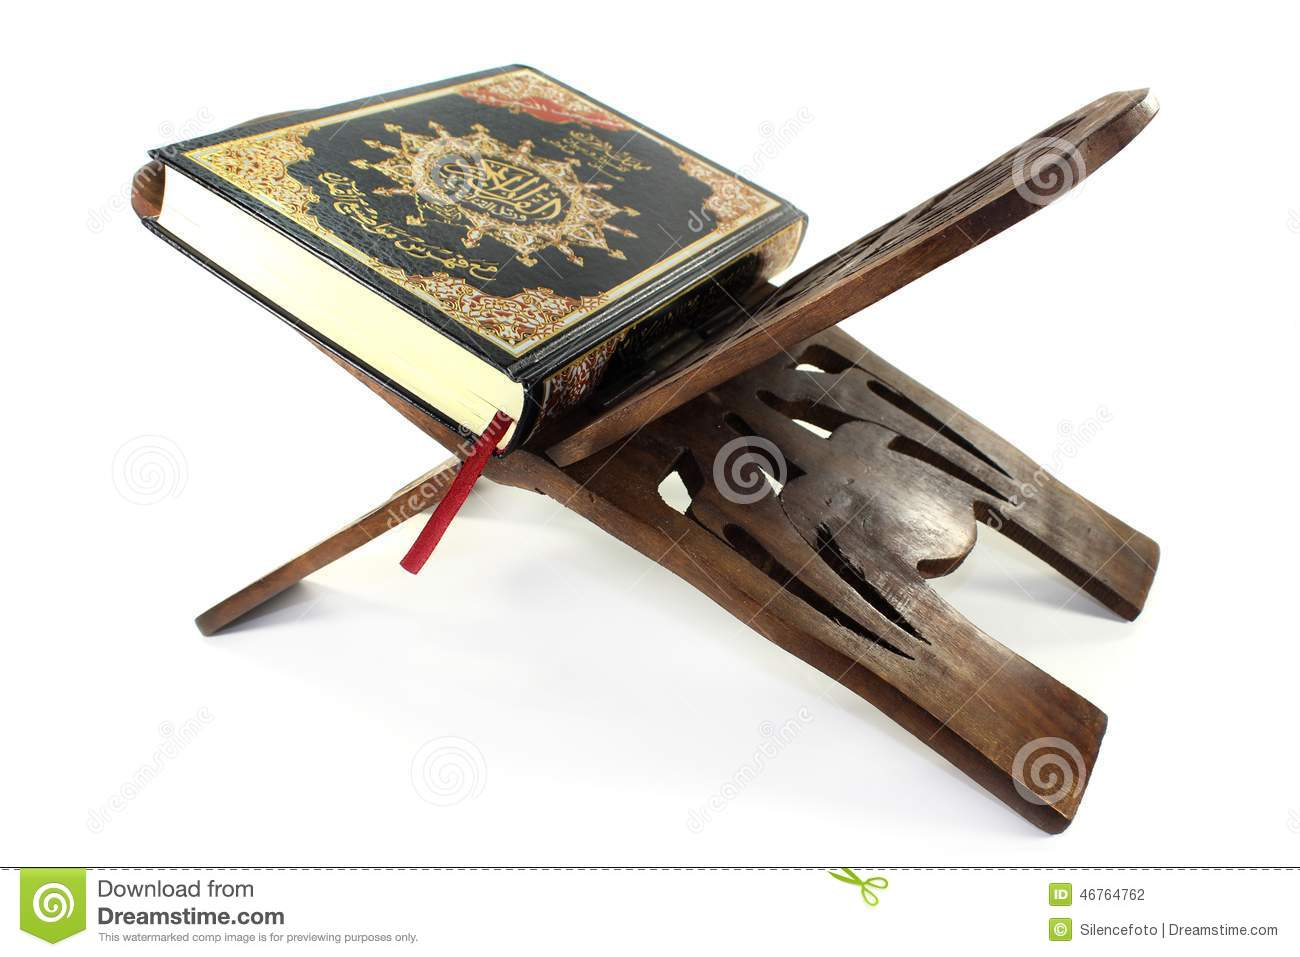 Quran with Quran wooden stand in front of white background.